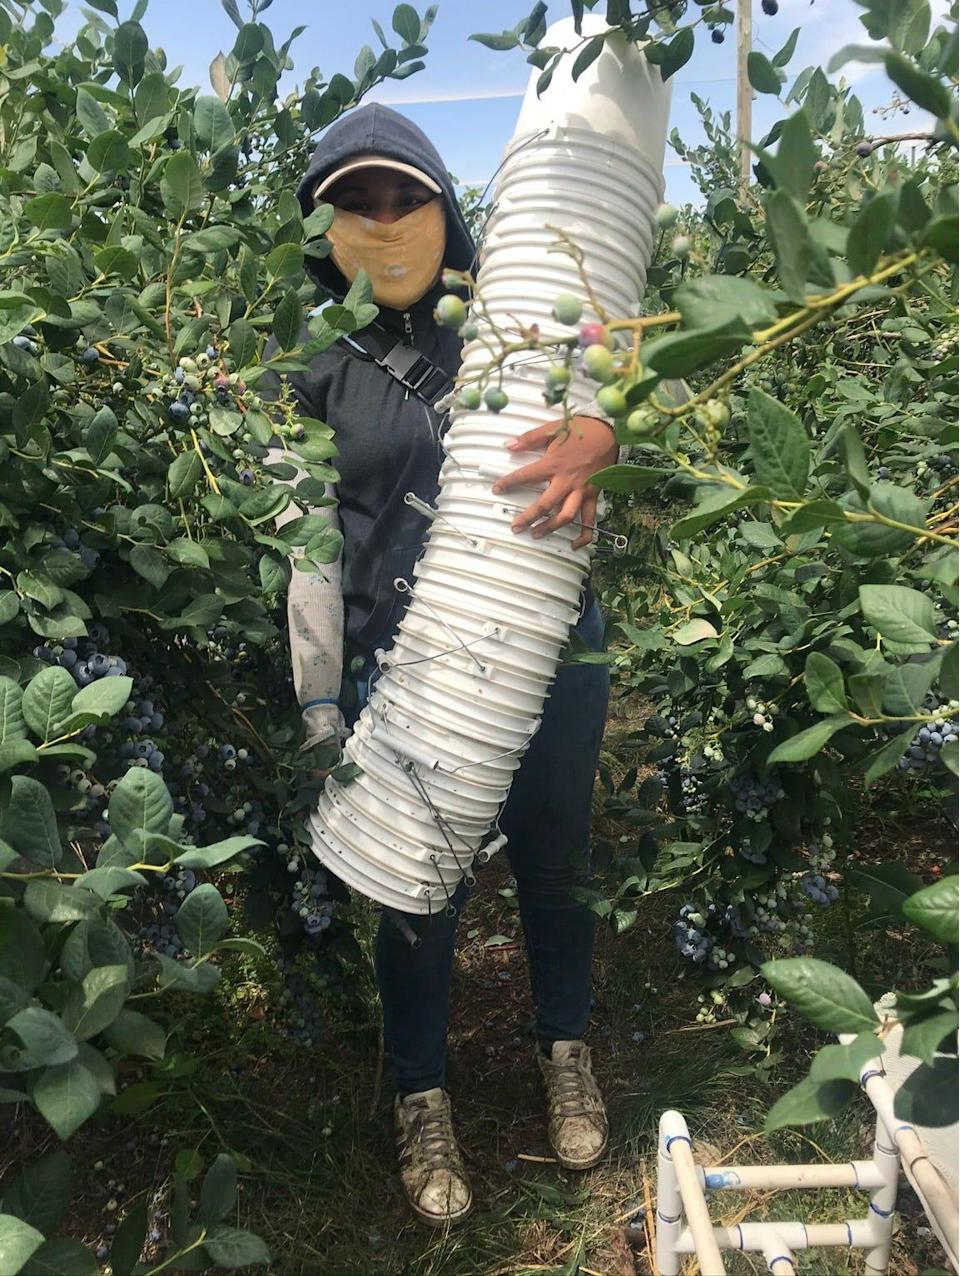 Gianna Nino-Tapias holds a day's worth of buckets to be filled with blueberries. Workers are paid about $3.50 a bucket and can pick four buckets in an hour on a good day. They're usually out there picking for 8 to 10 hours a day, even when it gets up to 110 degrees, and they're cut from the job if they can't manage to make minimum wage.